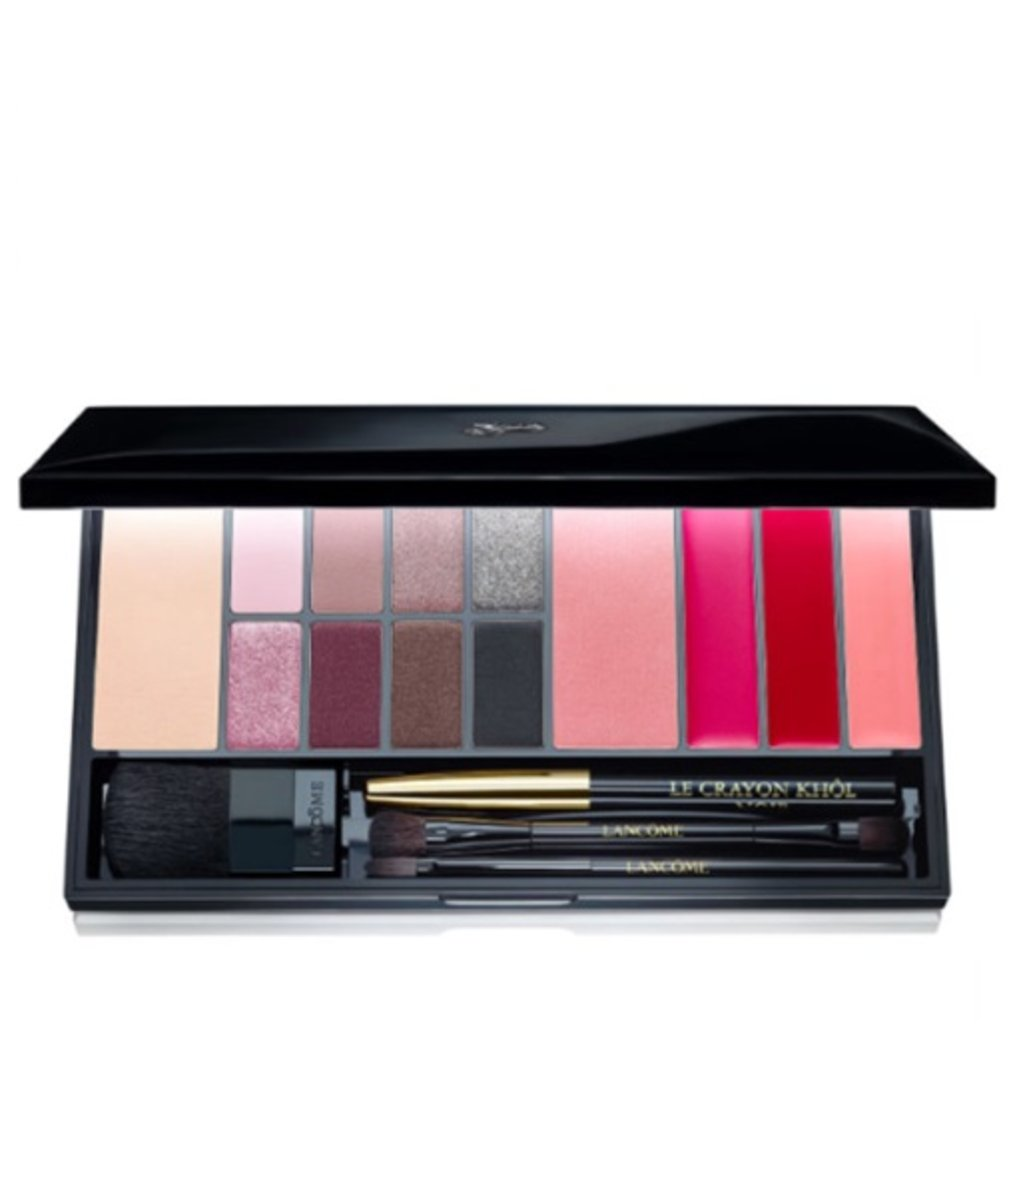 L'Absolu Palette #Parisienne Chic 20.9g [Parallel Import] *OPEN BEFORE 2020.09, USED BEFORE 2021.09